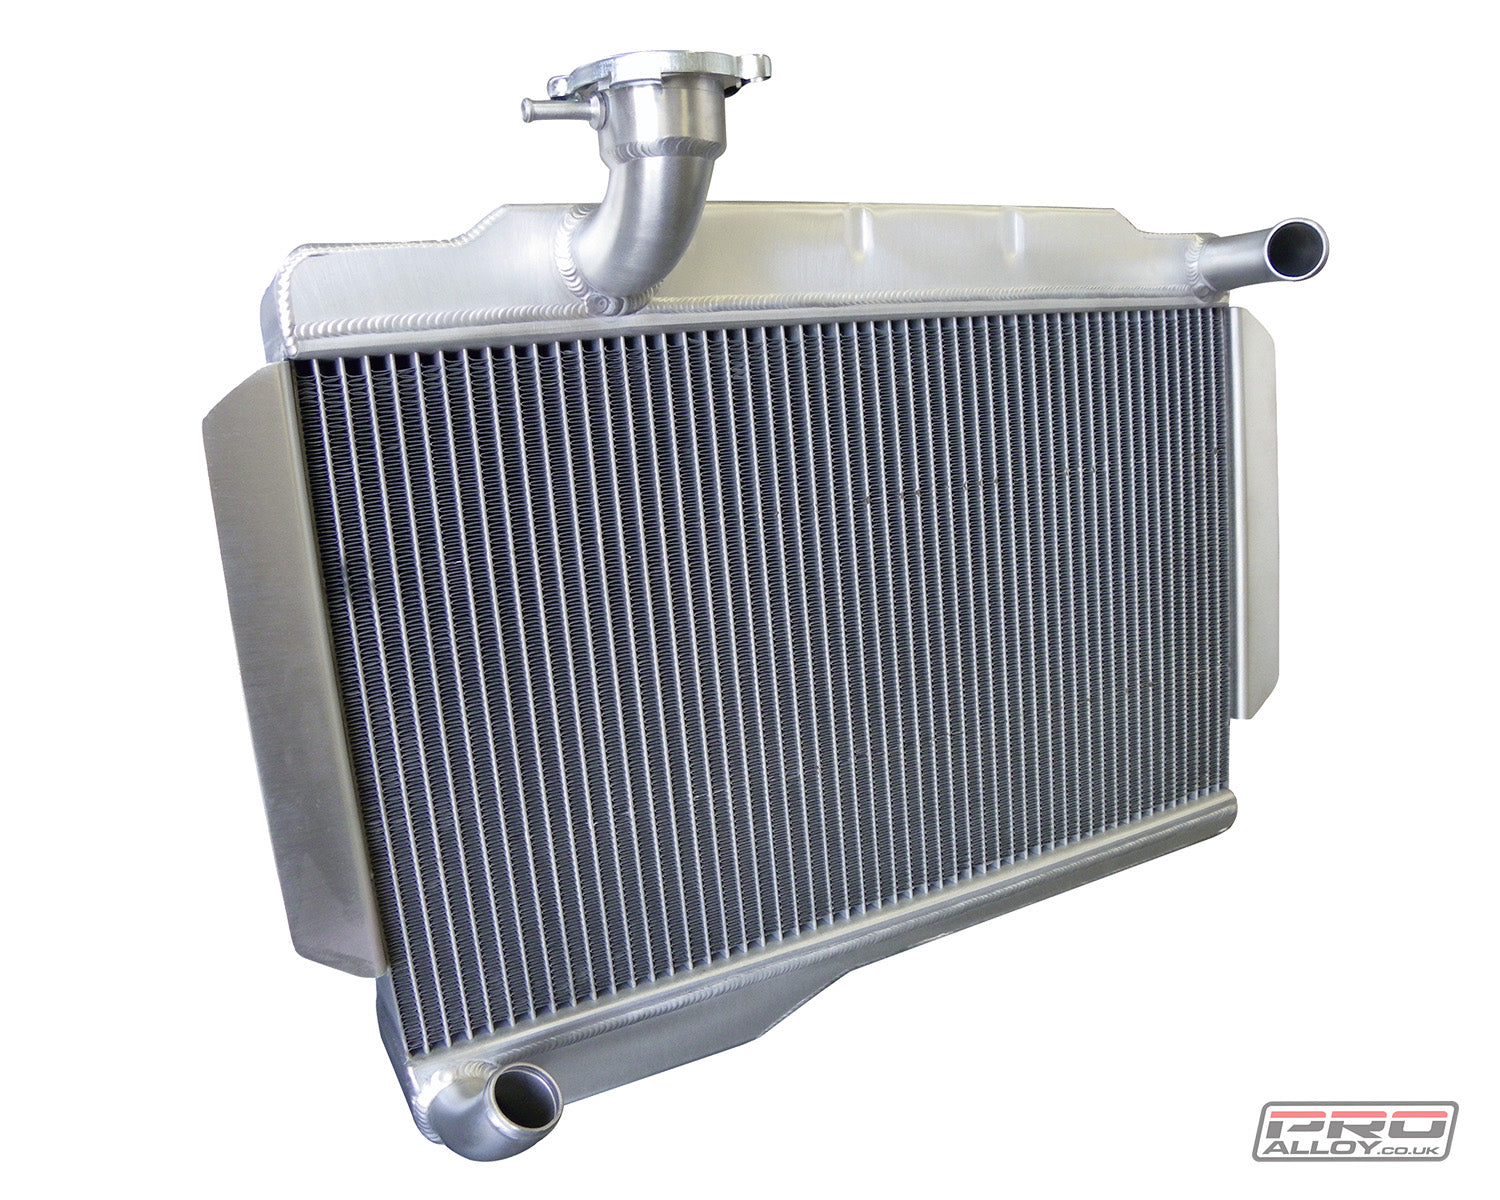 MGB (Rear Filler) Radiator